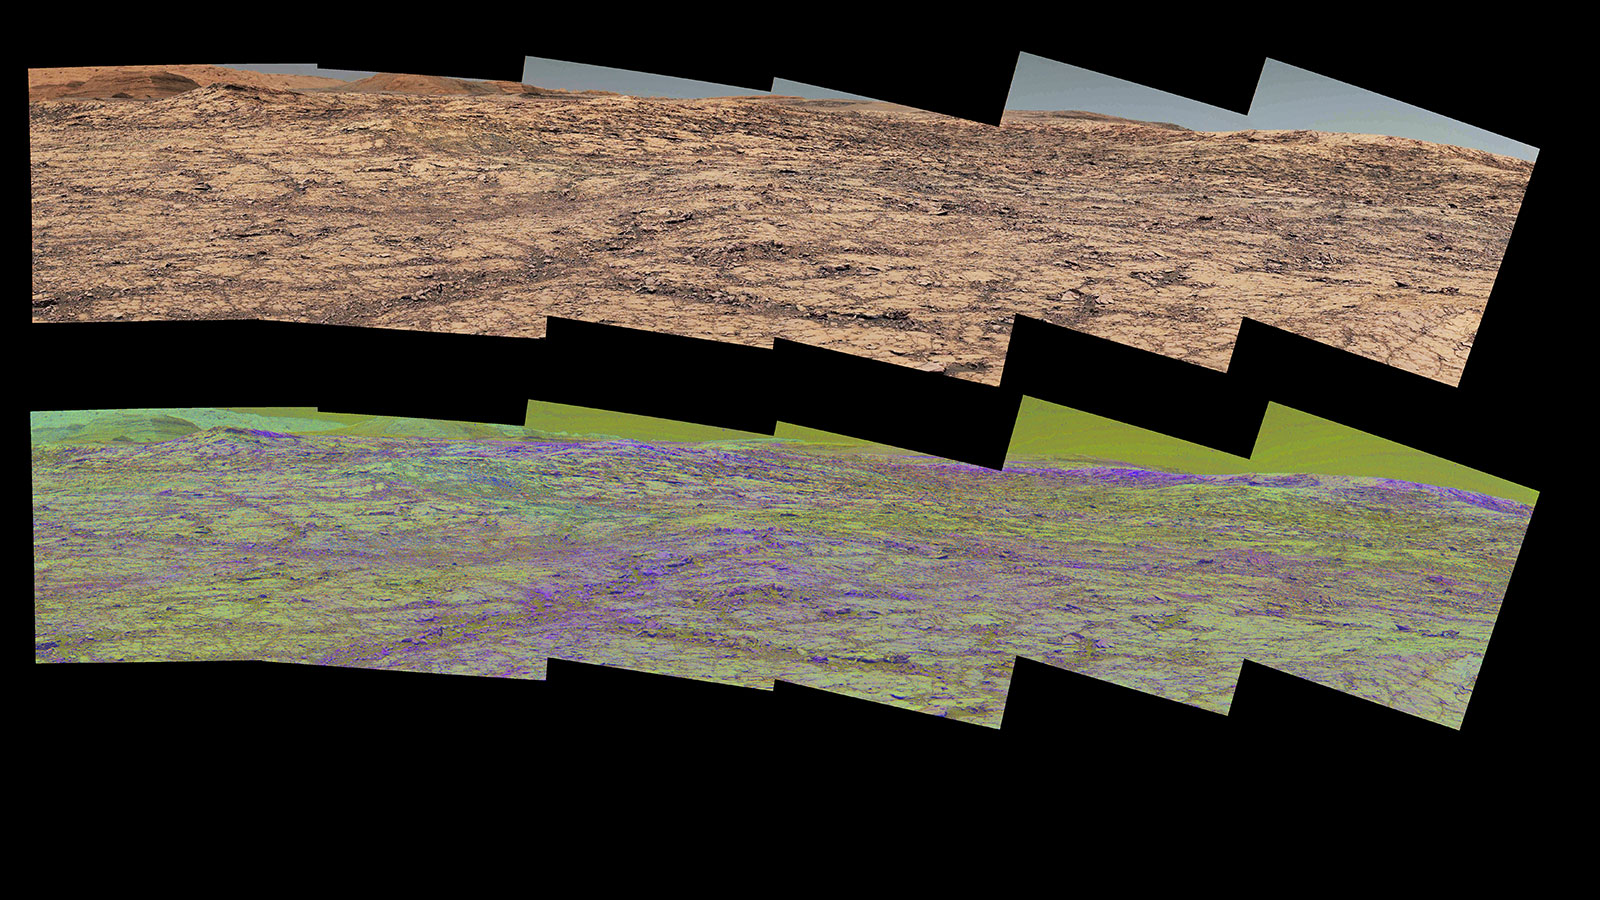 This pair of images from the Mast Camera (Mastcam) on NASA's Curiosity rover illustrates how special filters are used to scout terrain ahead for variations in the local bedrock.